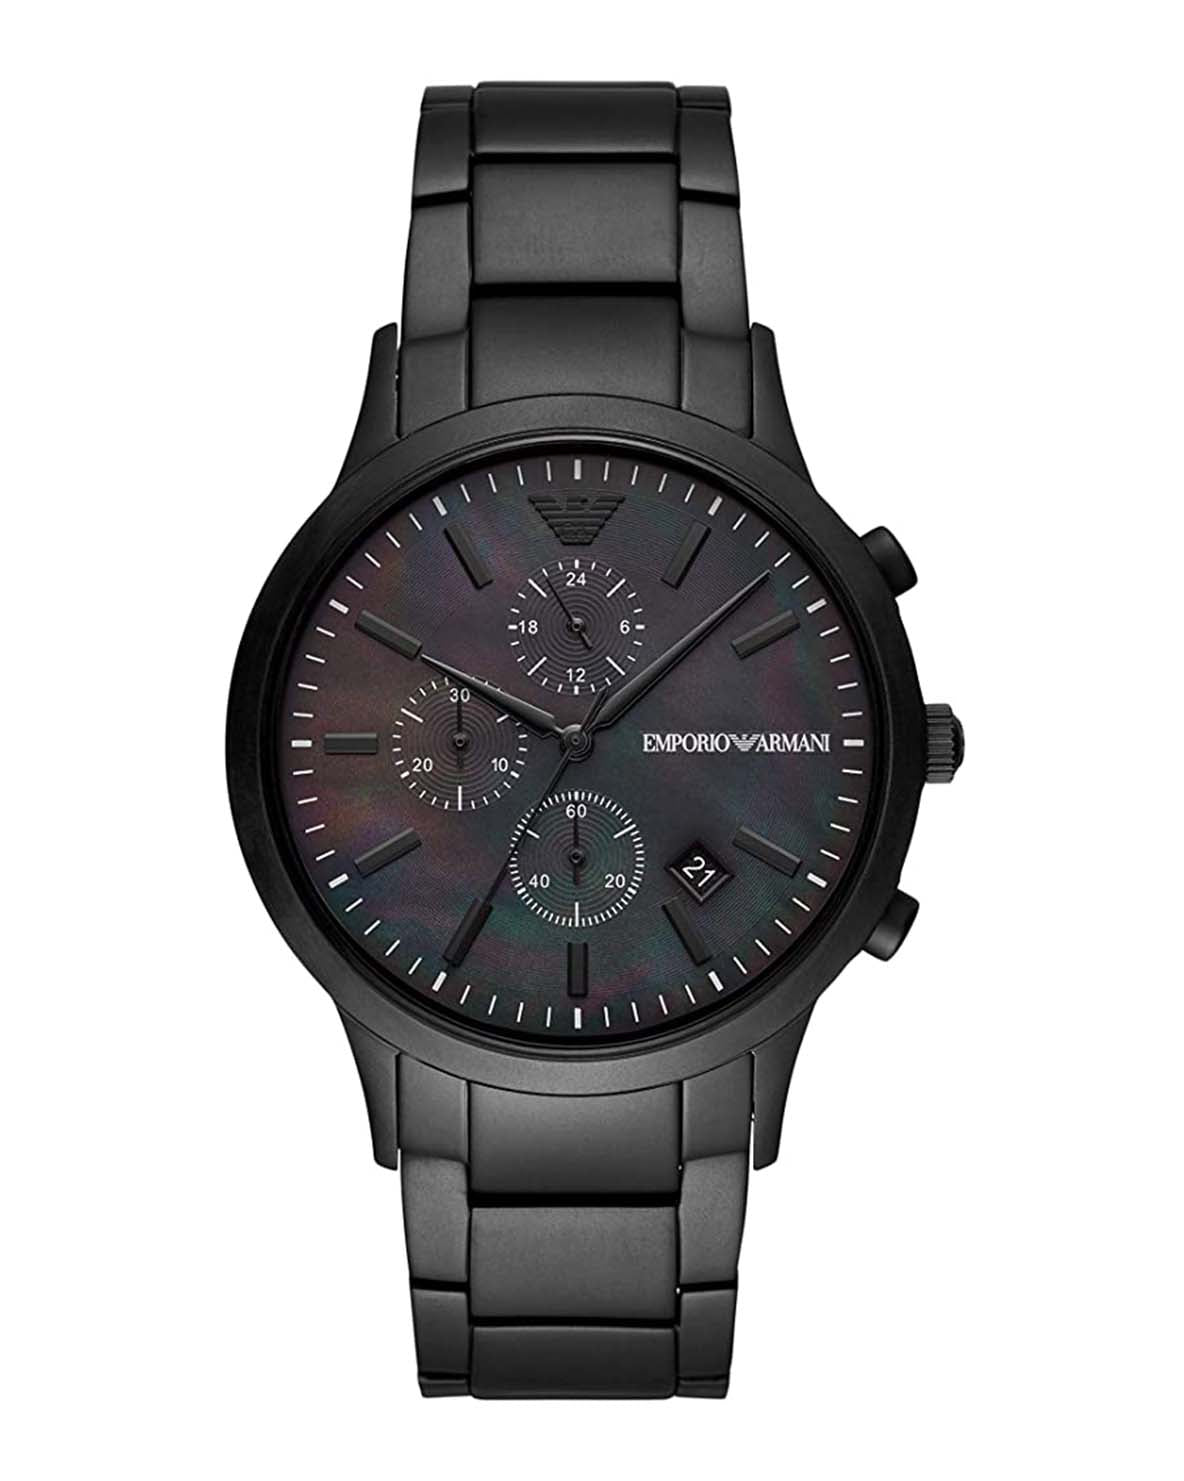 Emporio Armani Renato Chronograph Black Steel Gents Watch